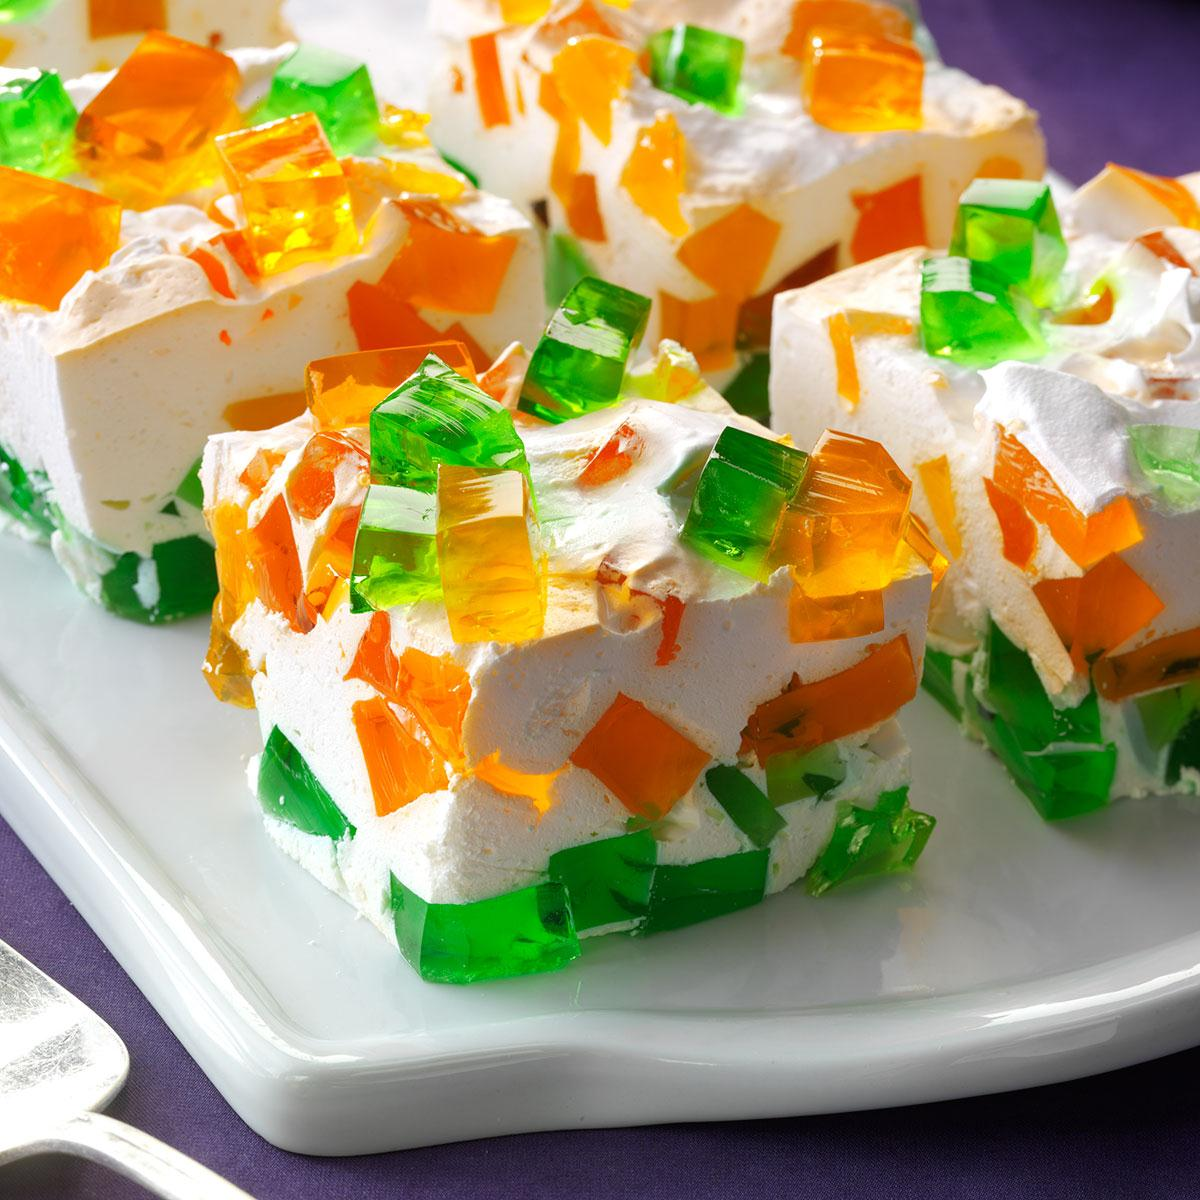 Stained glass gelatin recipe taste of home forumfinder Choice Image